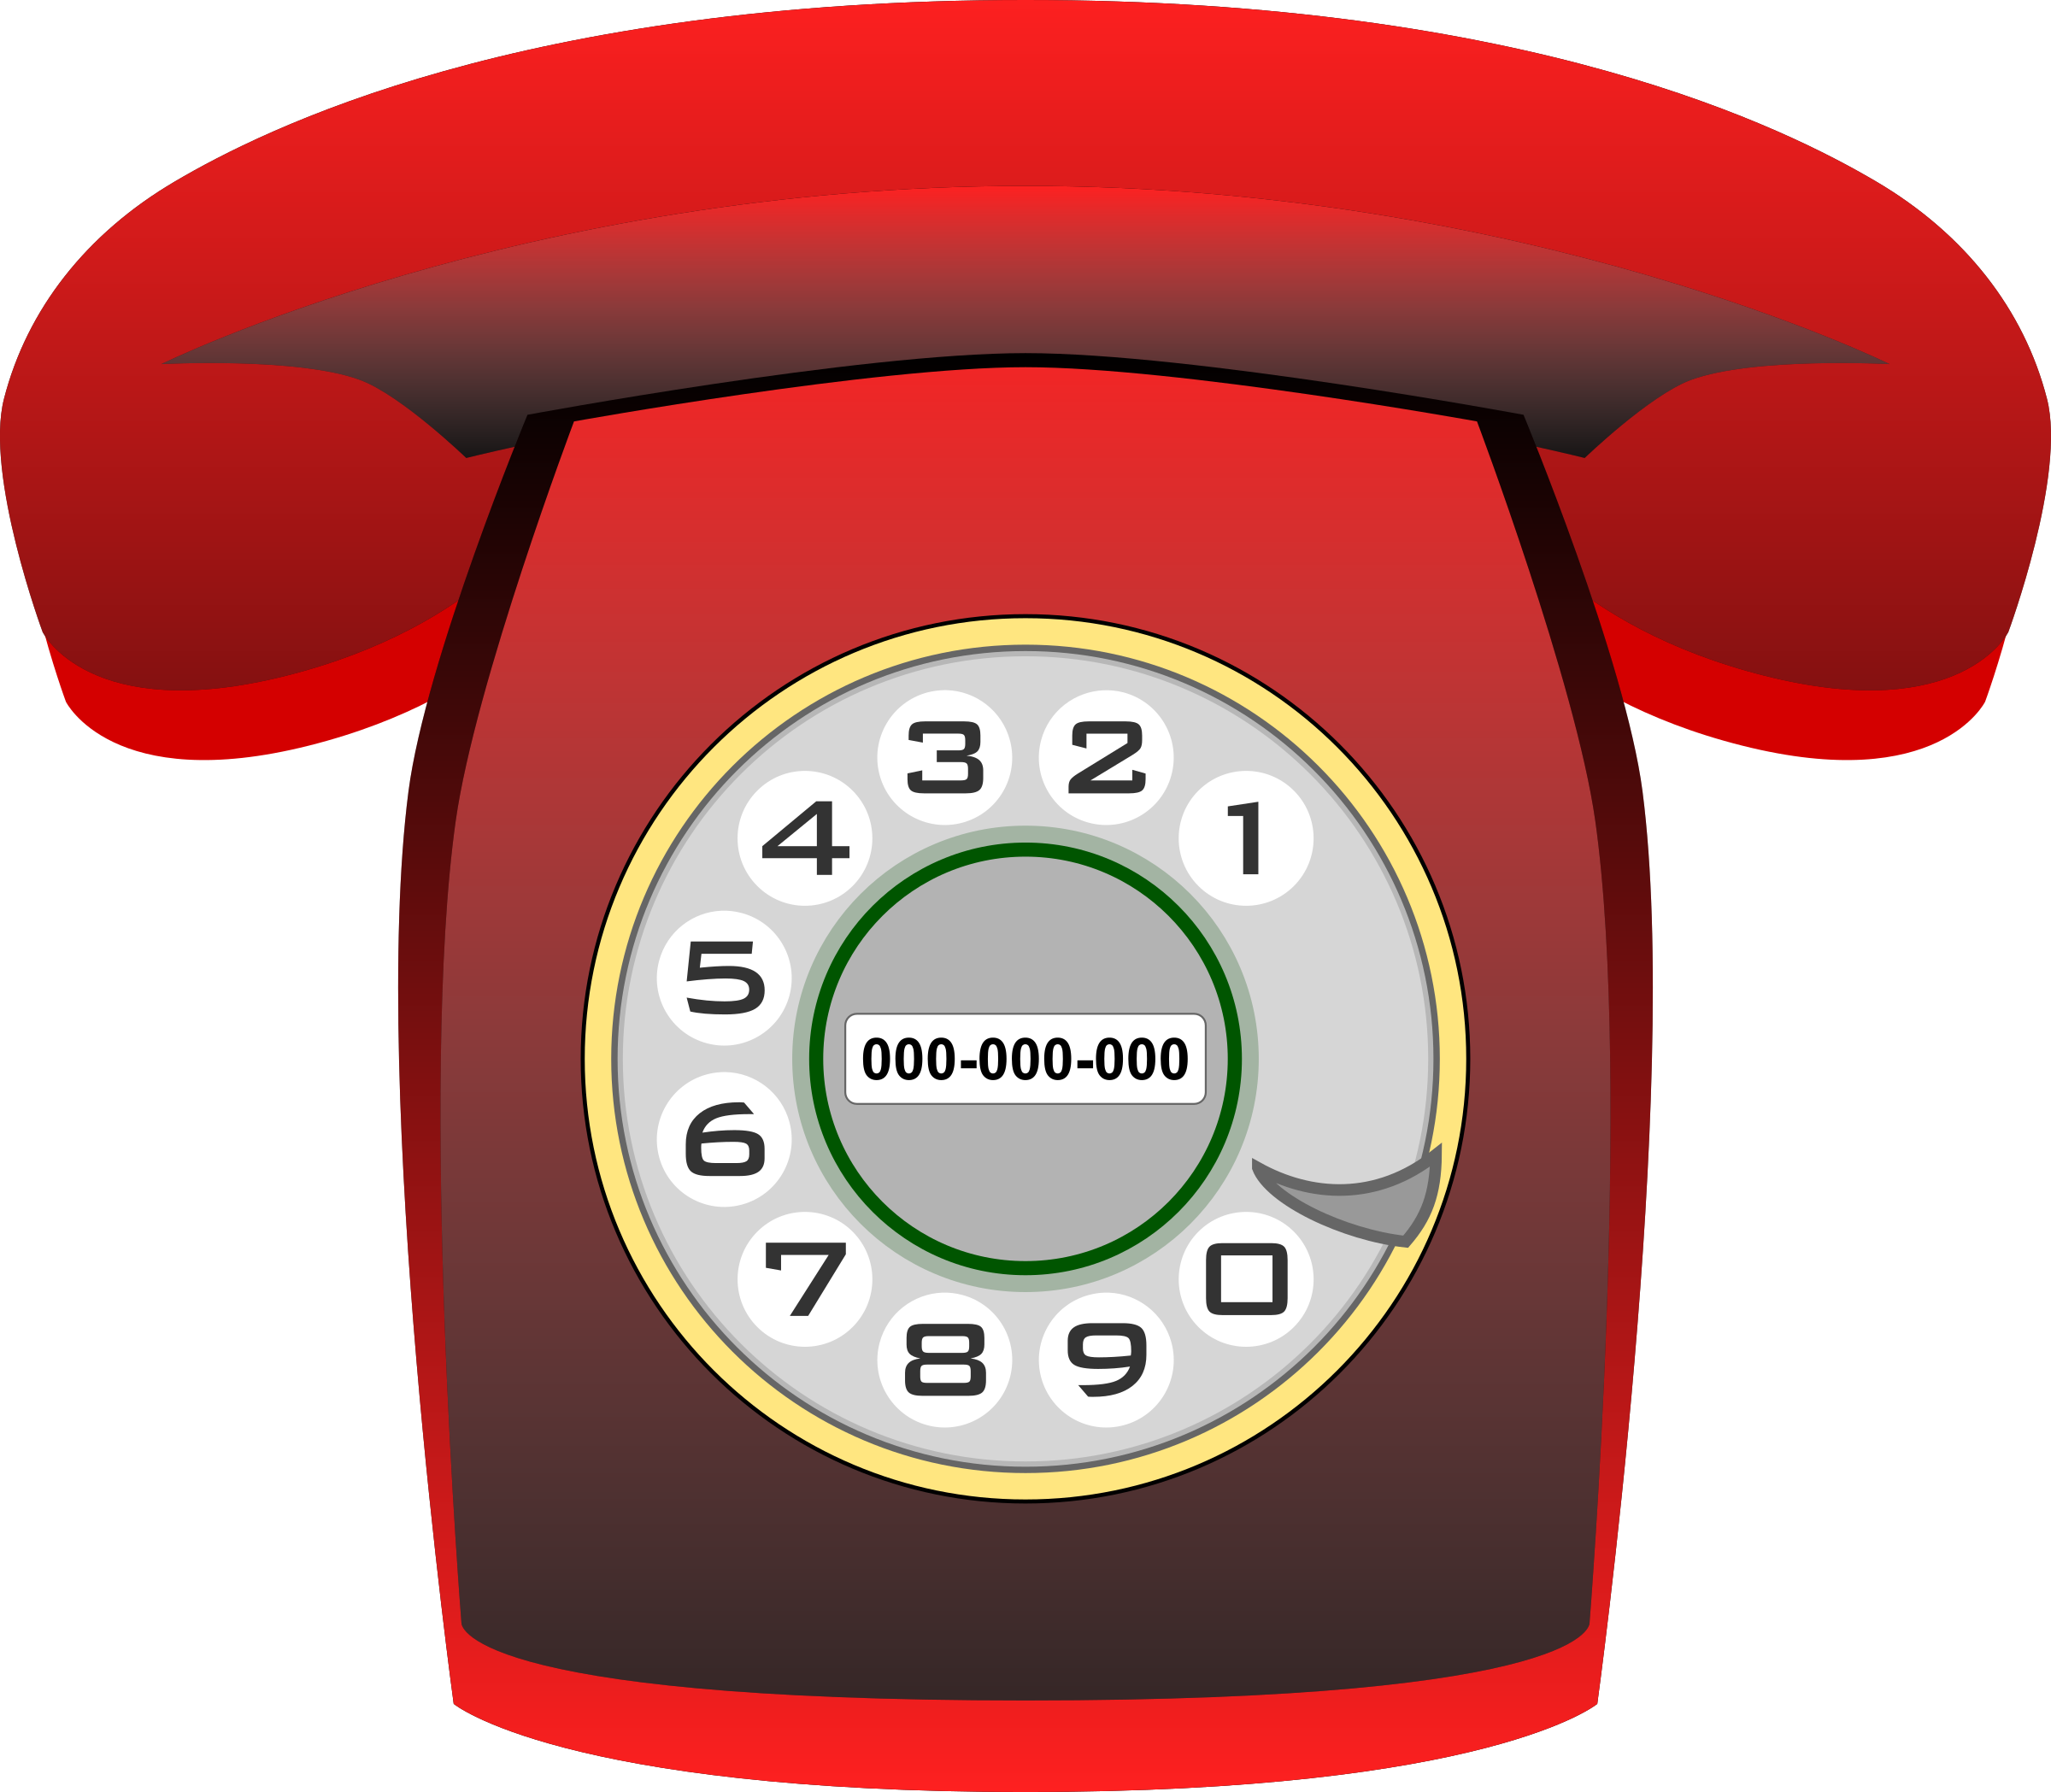 Red clip art home. Telephone clipart rang